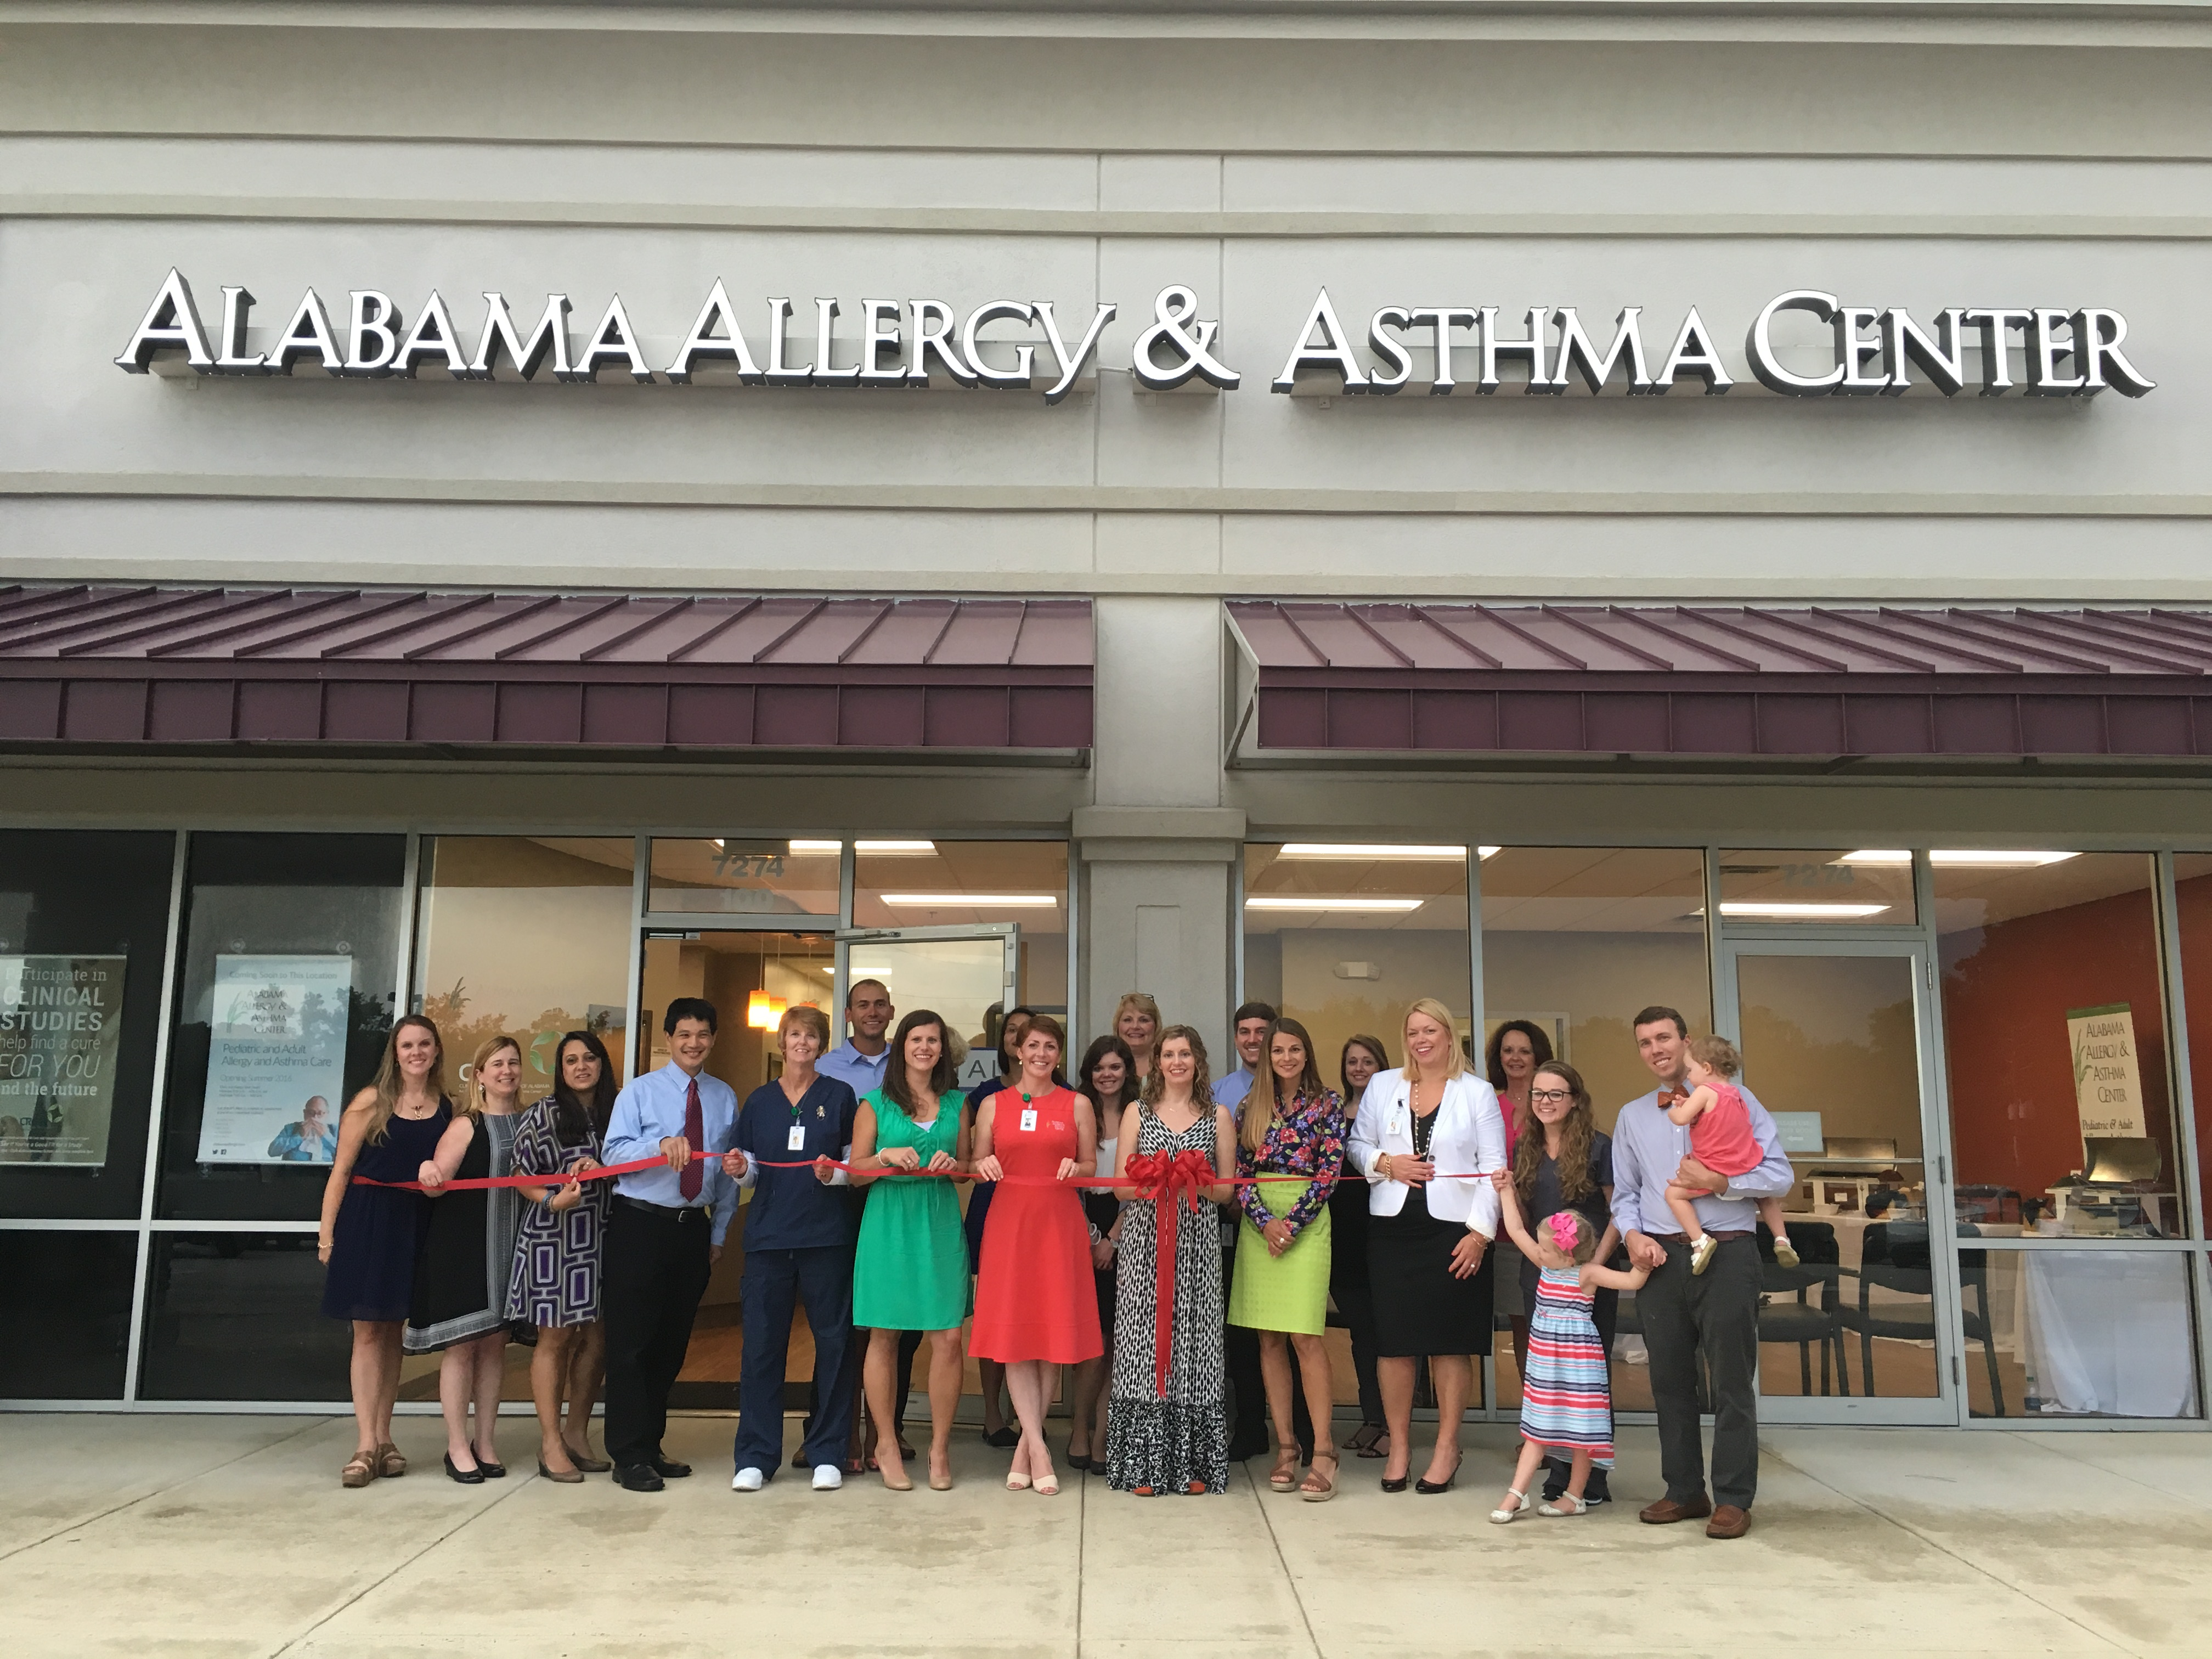 Alabama Allergy and Asthma Center hosts ribbon cutting